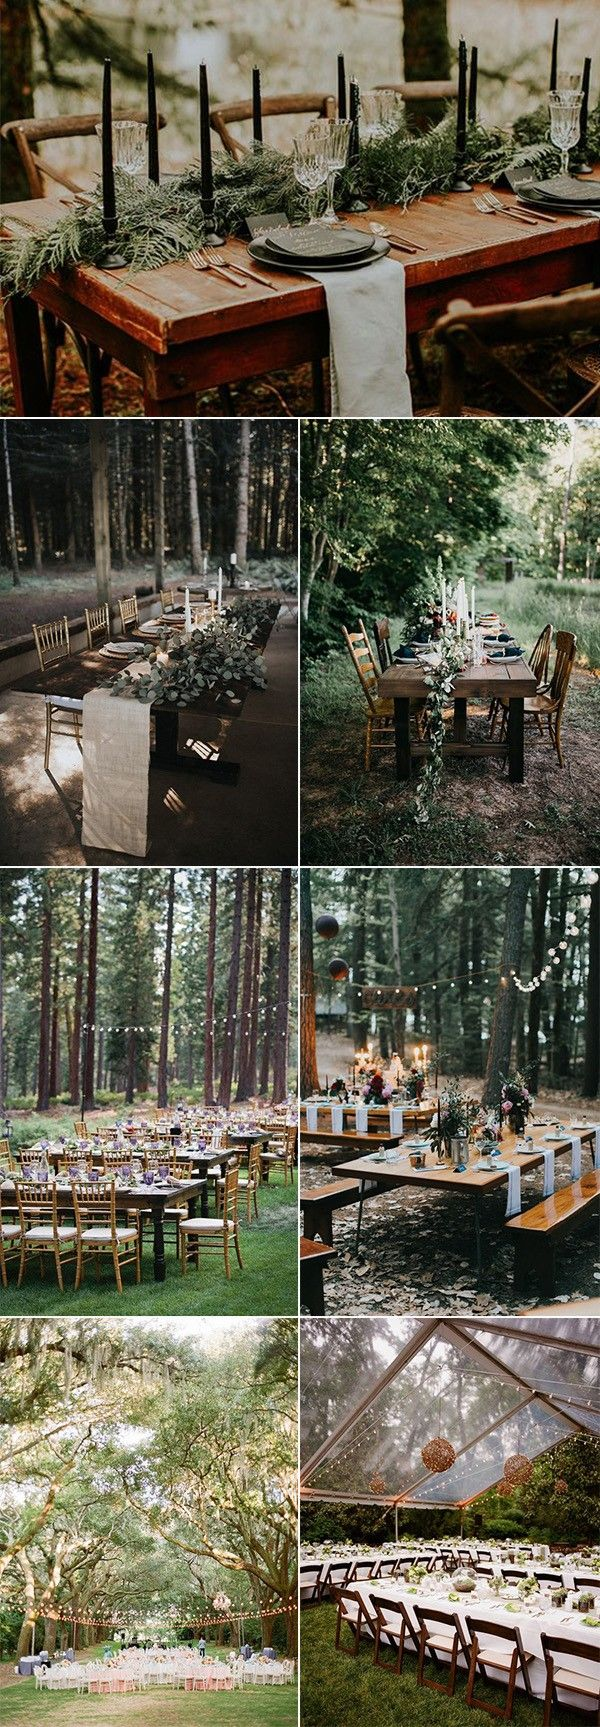 25 Whimsical Woodsy Forest Wedding Reception Ideas for 2019 Trends